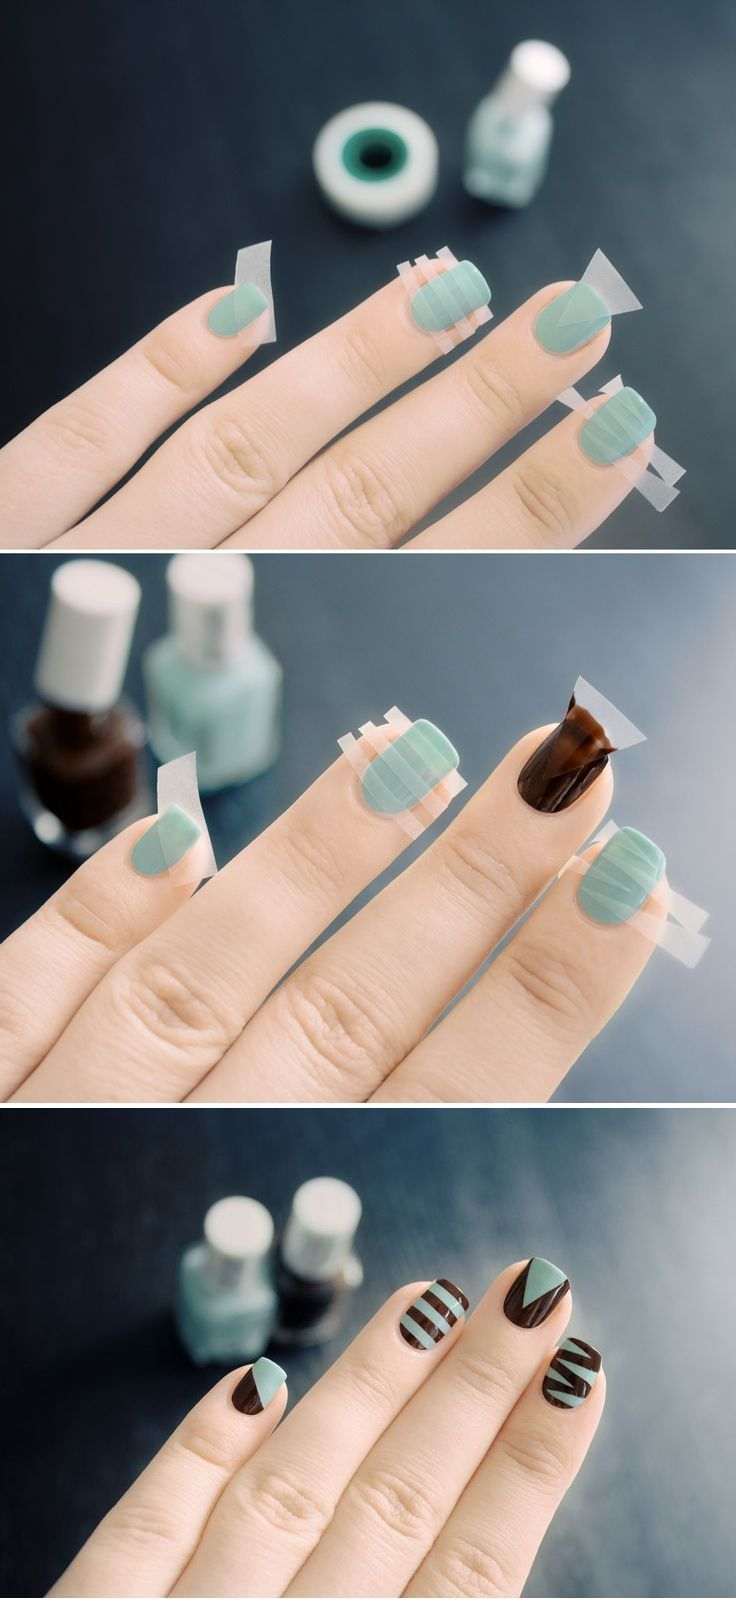 Cool and funny nail art design